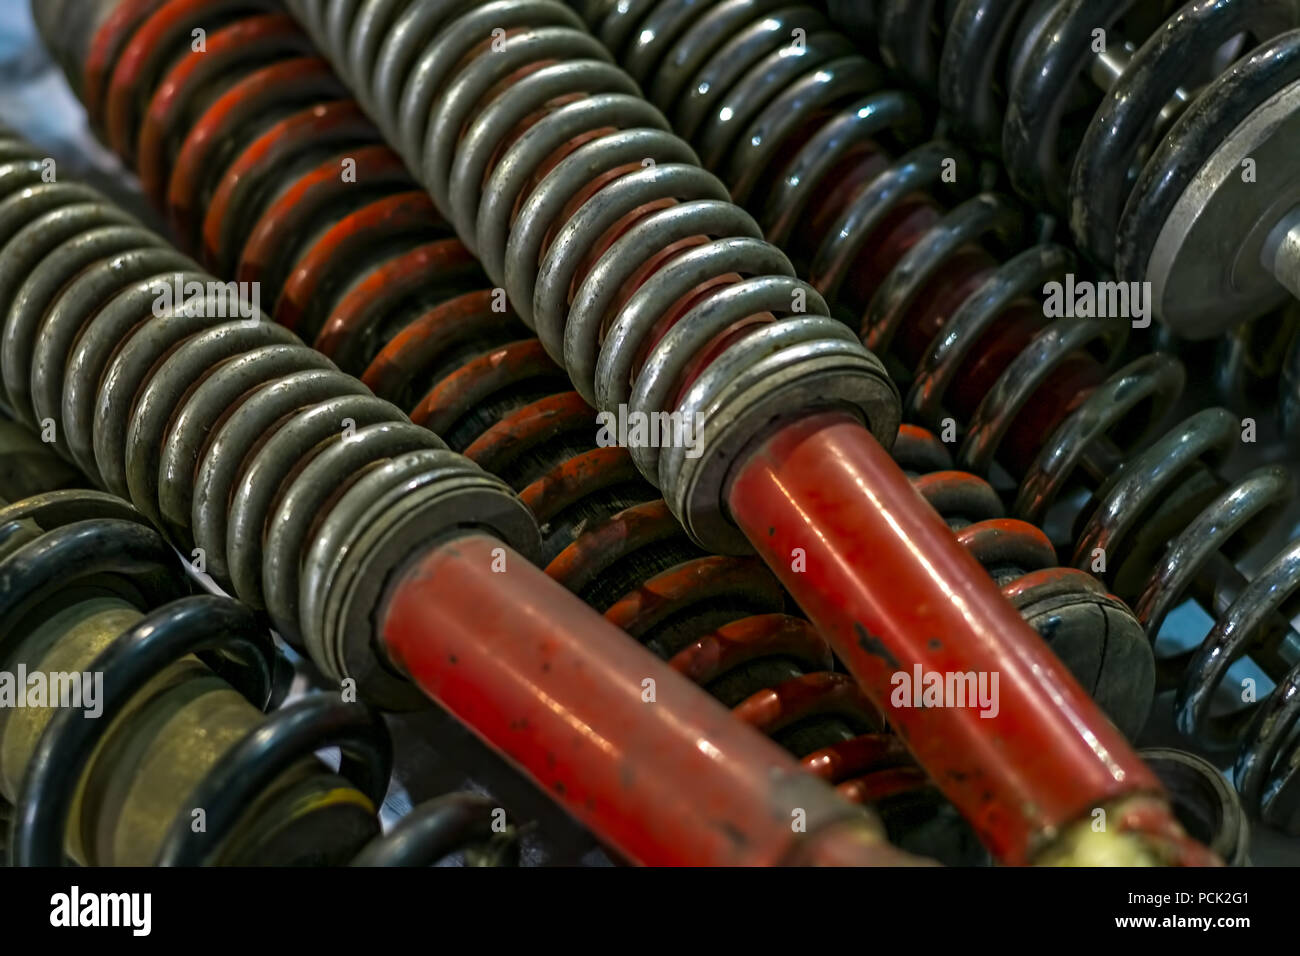 old shock absorbers. - Stock Image